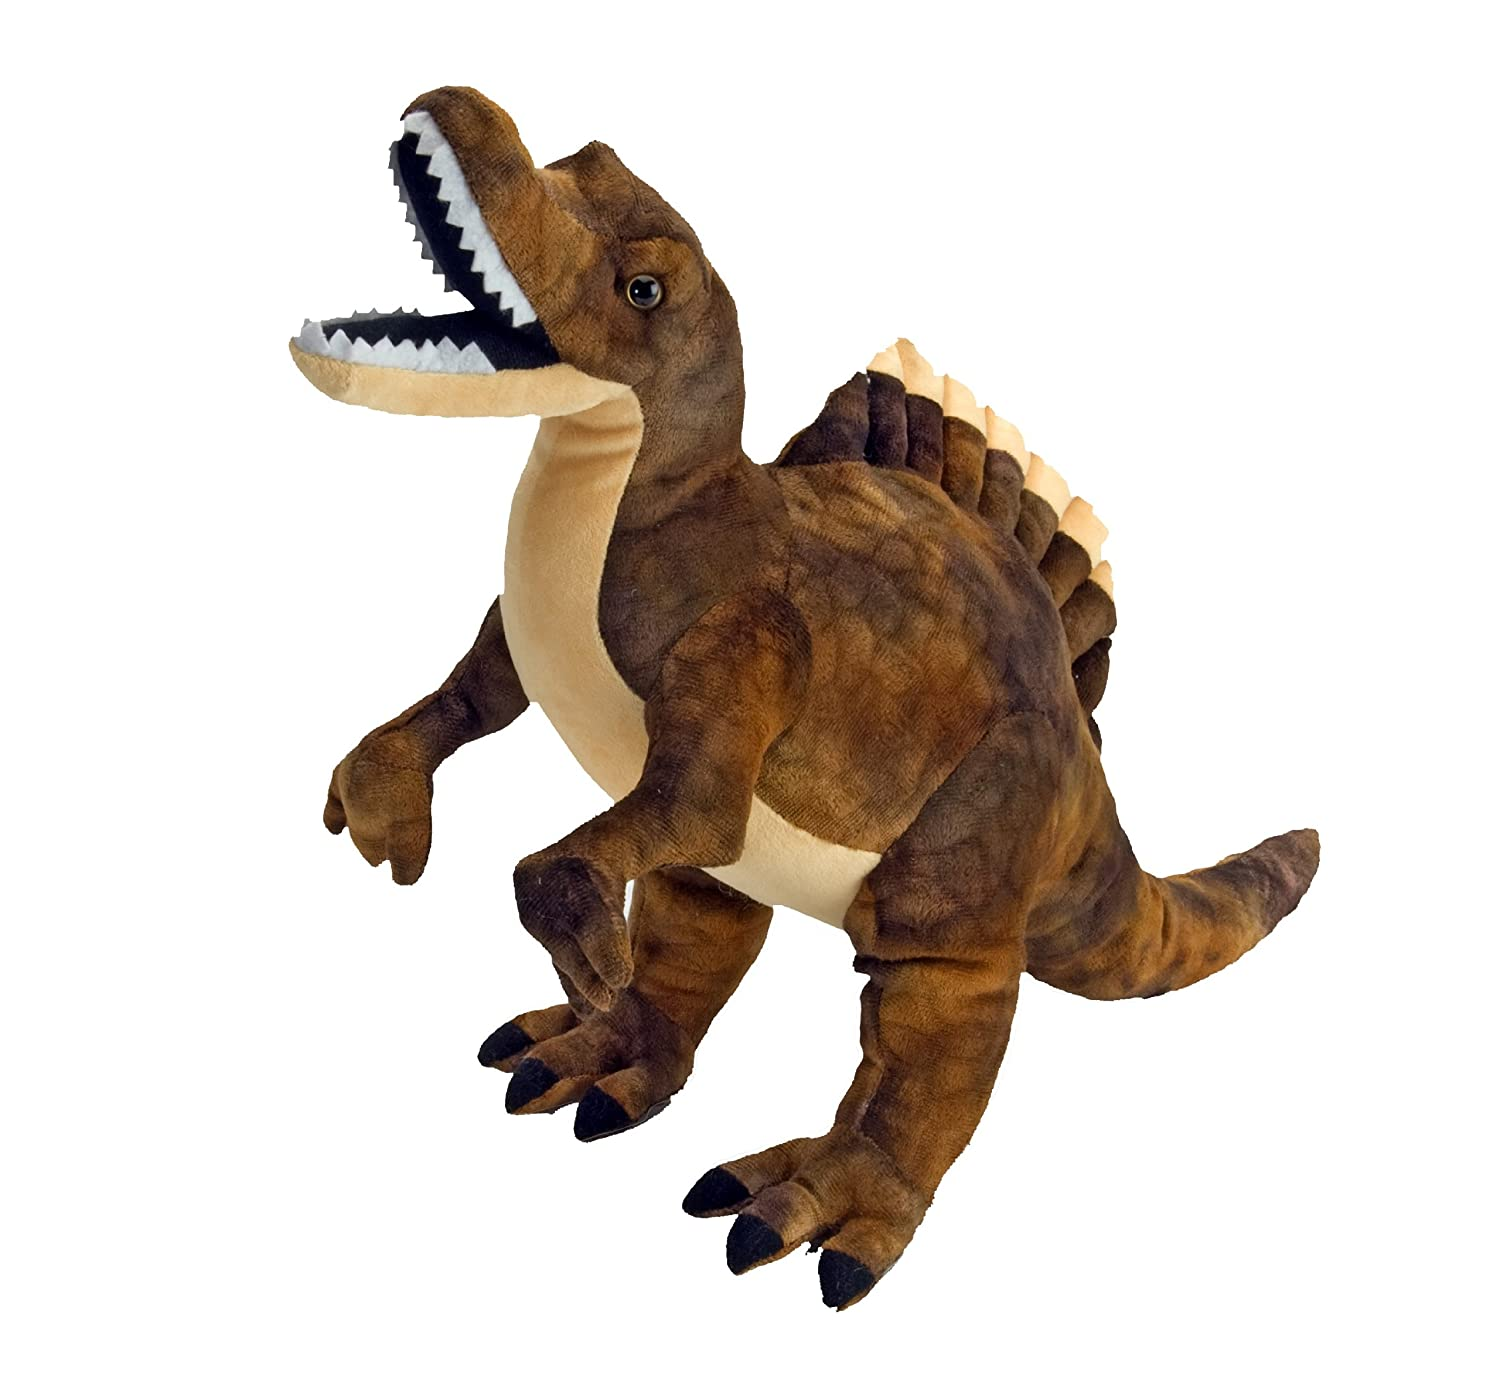 Amazon.com: Wild Republic Spinosaurus Plush, Dinosaur Stuffed Animal, Plush Toy, Gifts for Kids, Dinosauria 15 Inches: Toys & Games